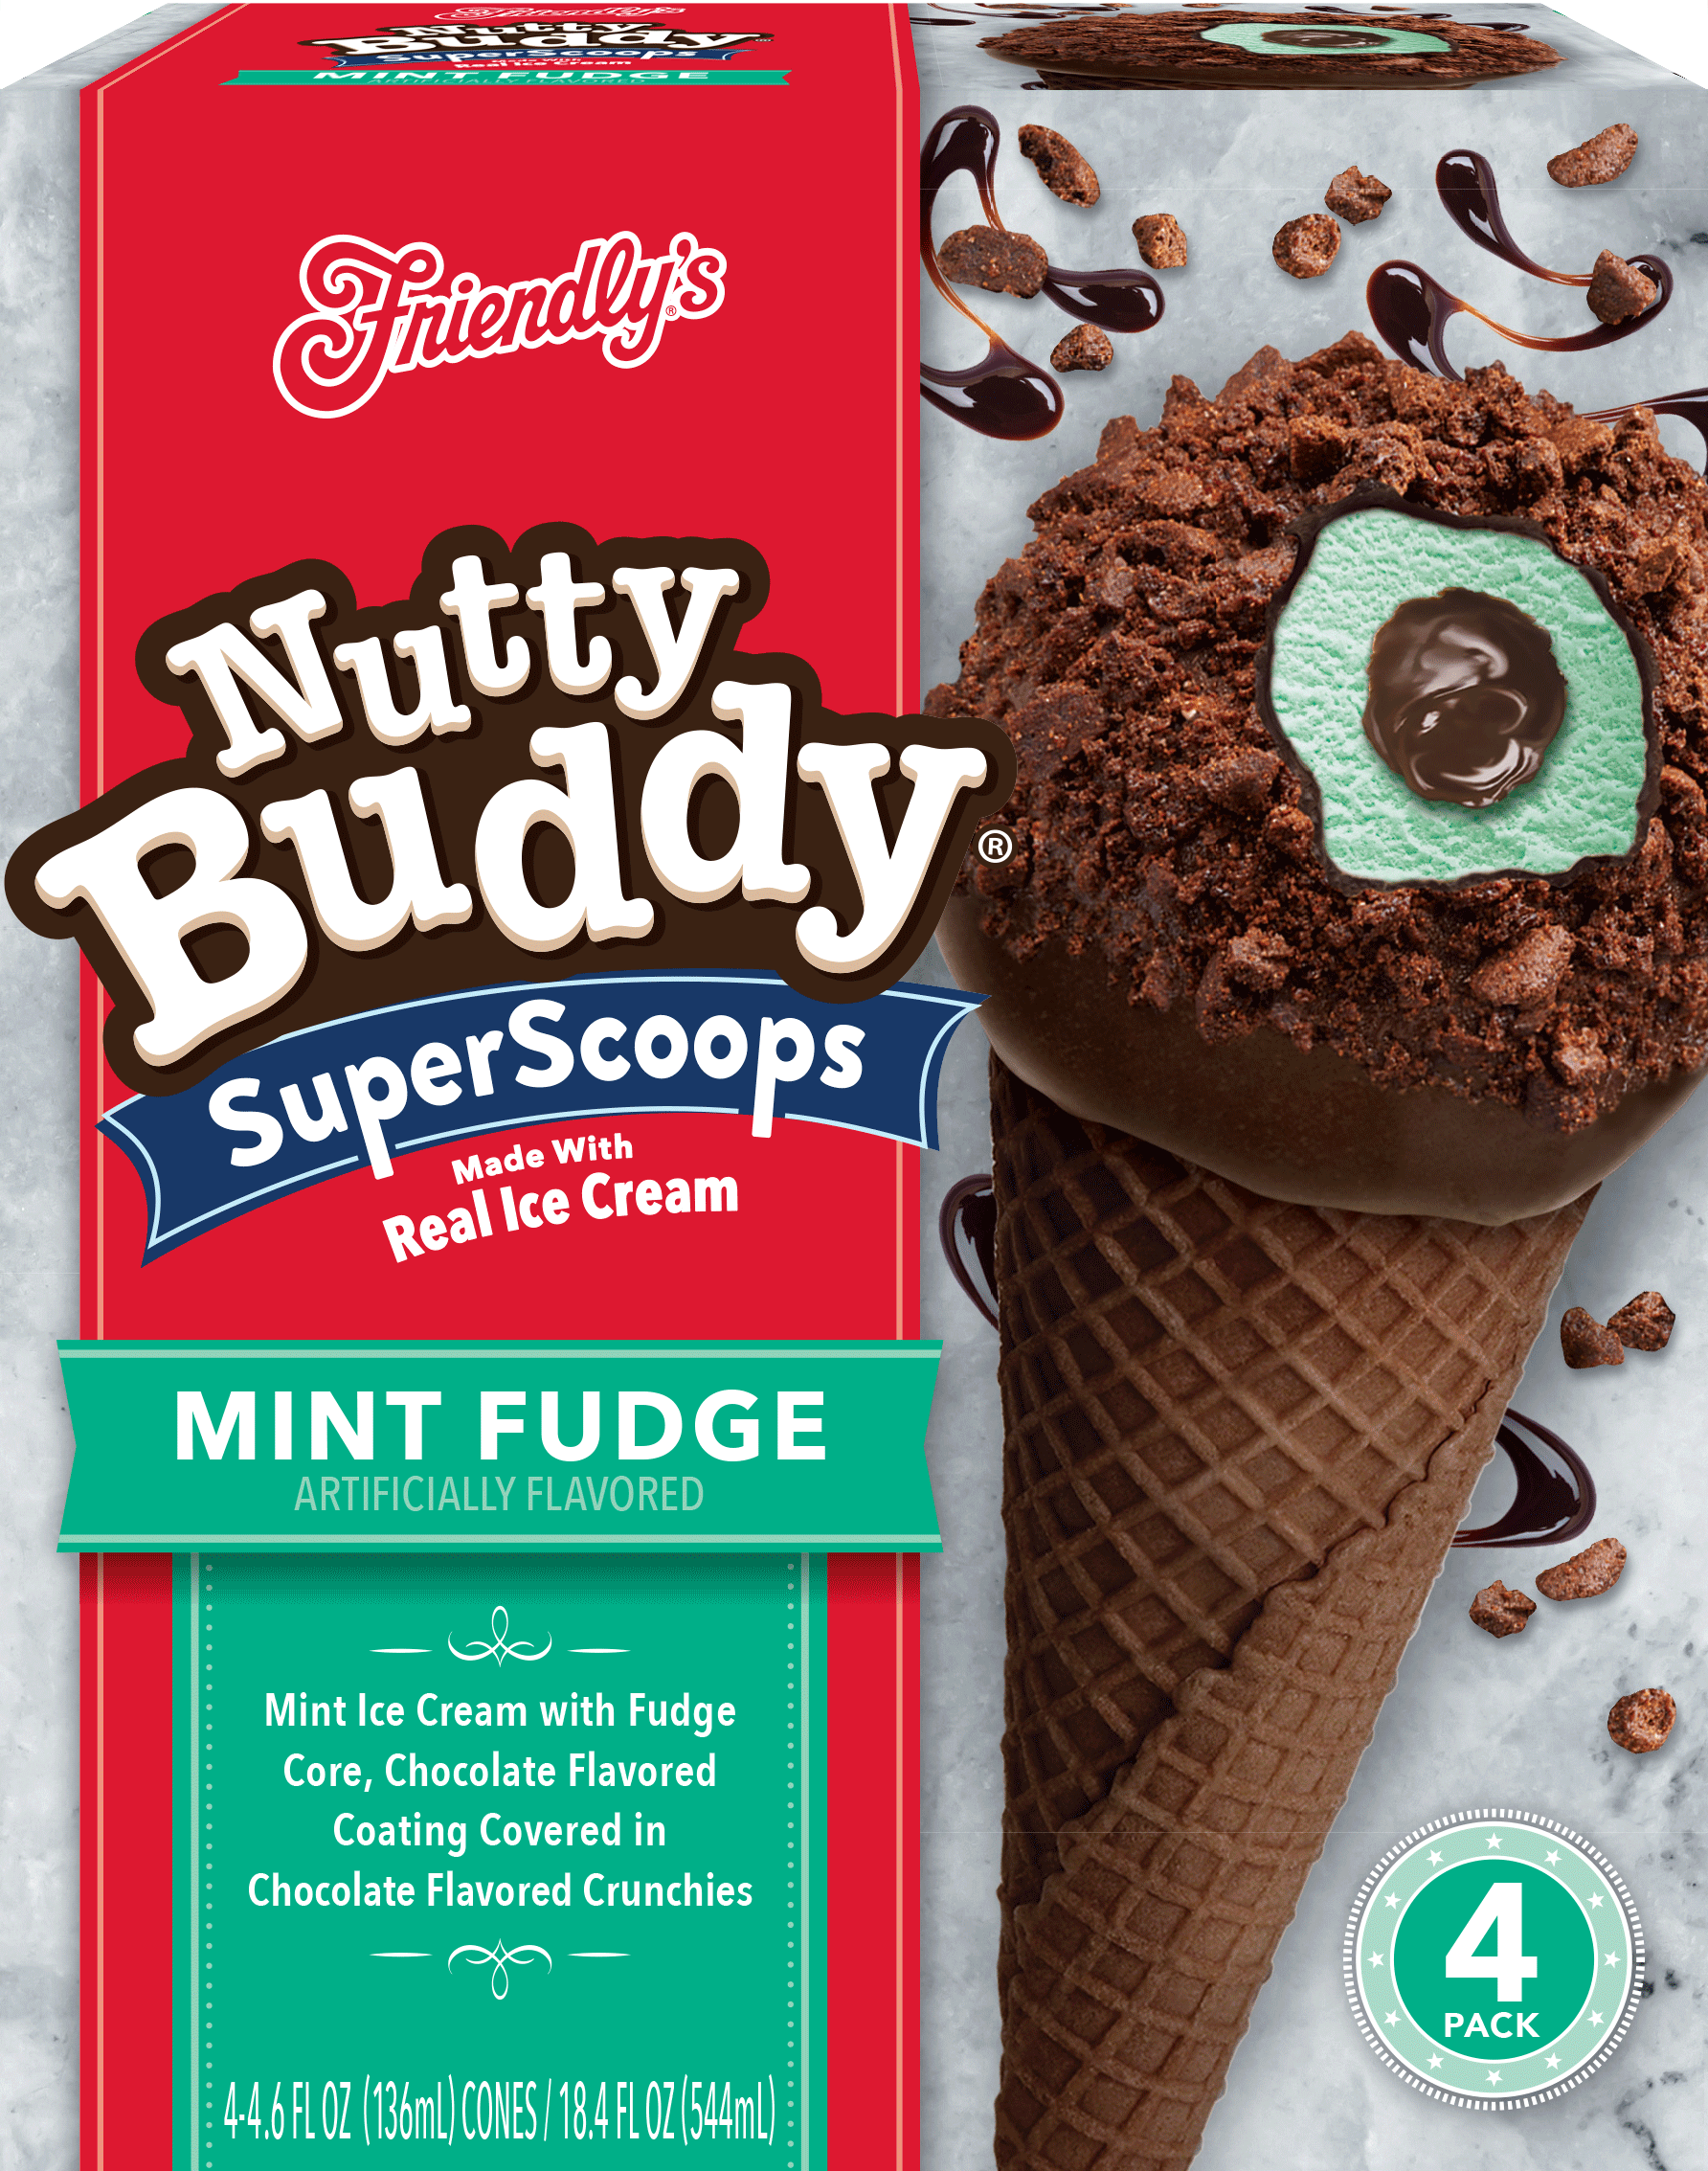 Mint Fudge Nutty Buddy